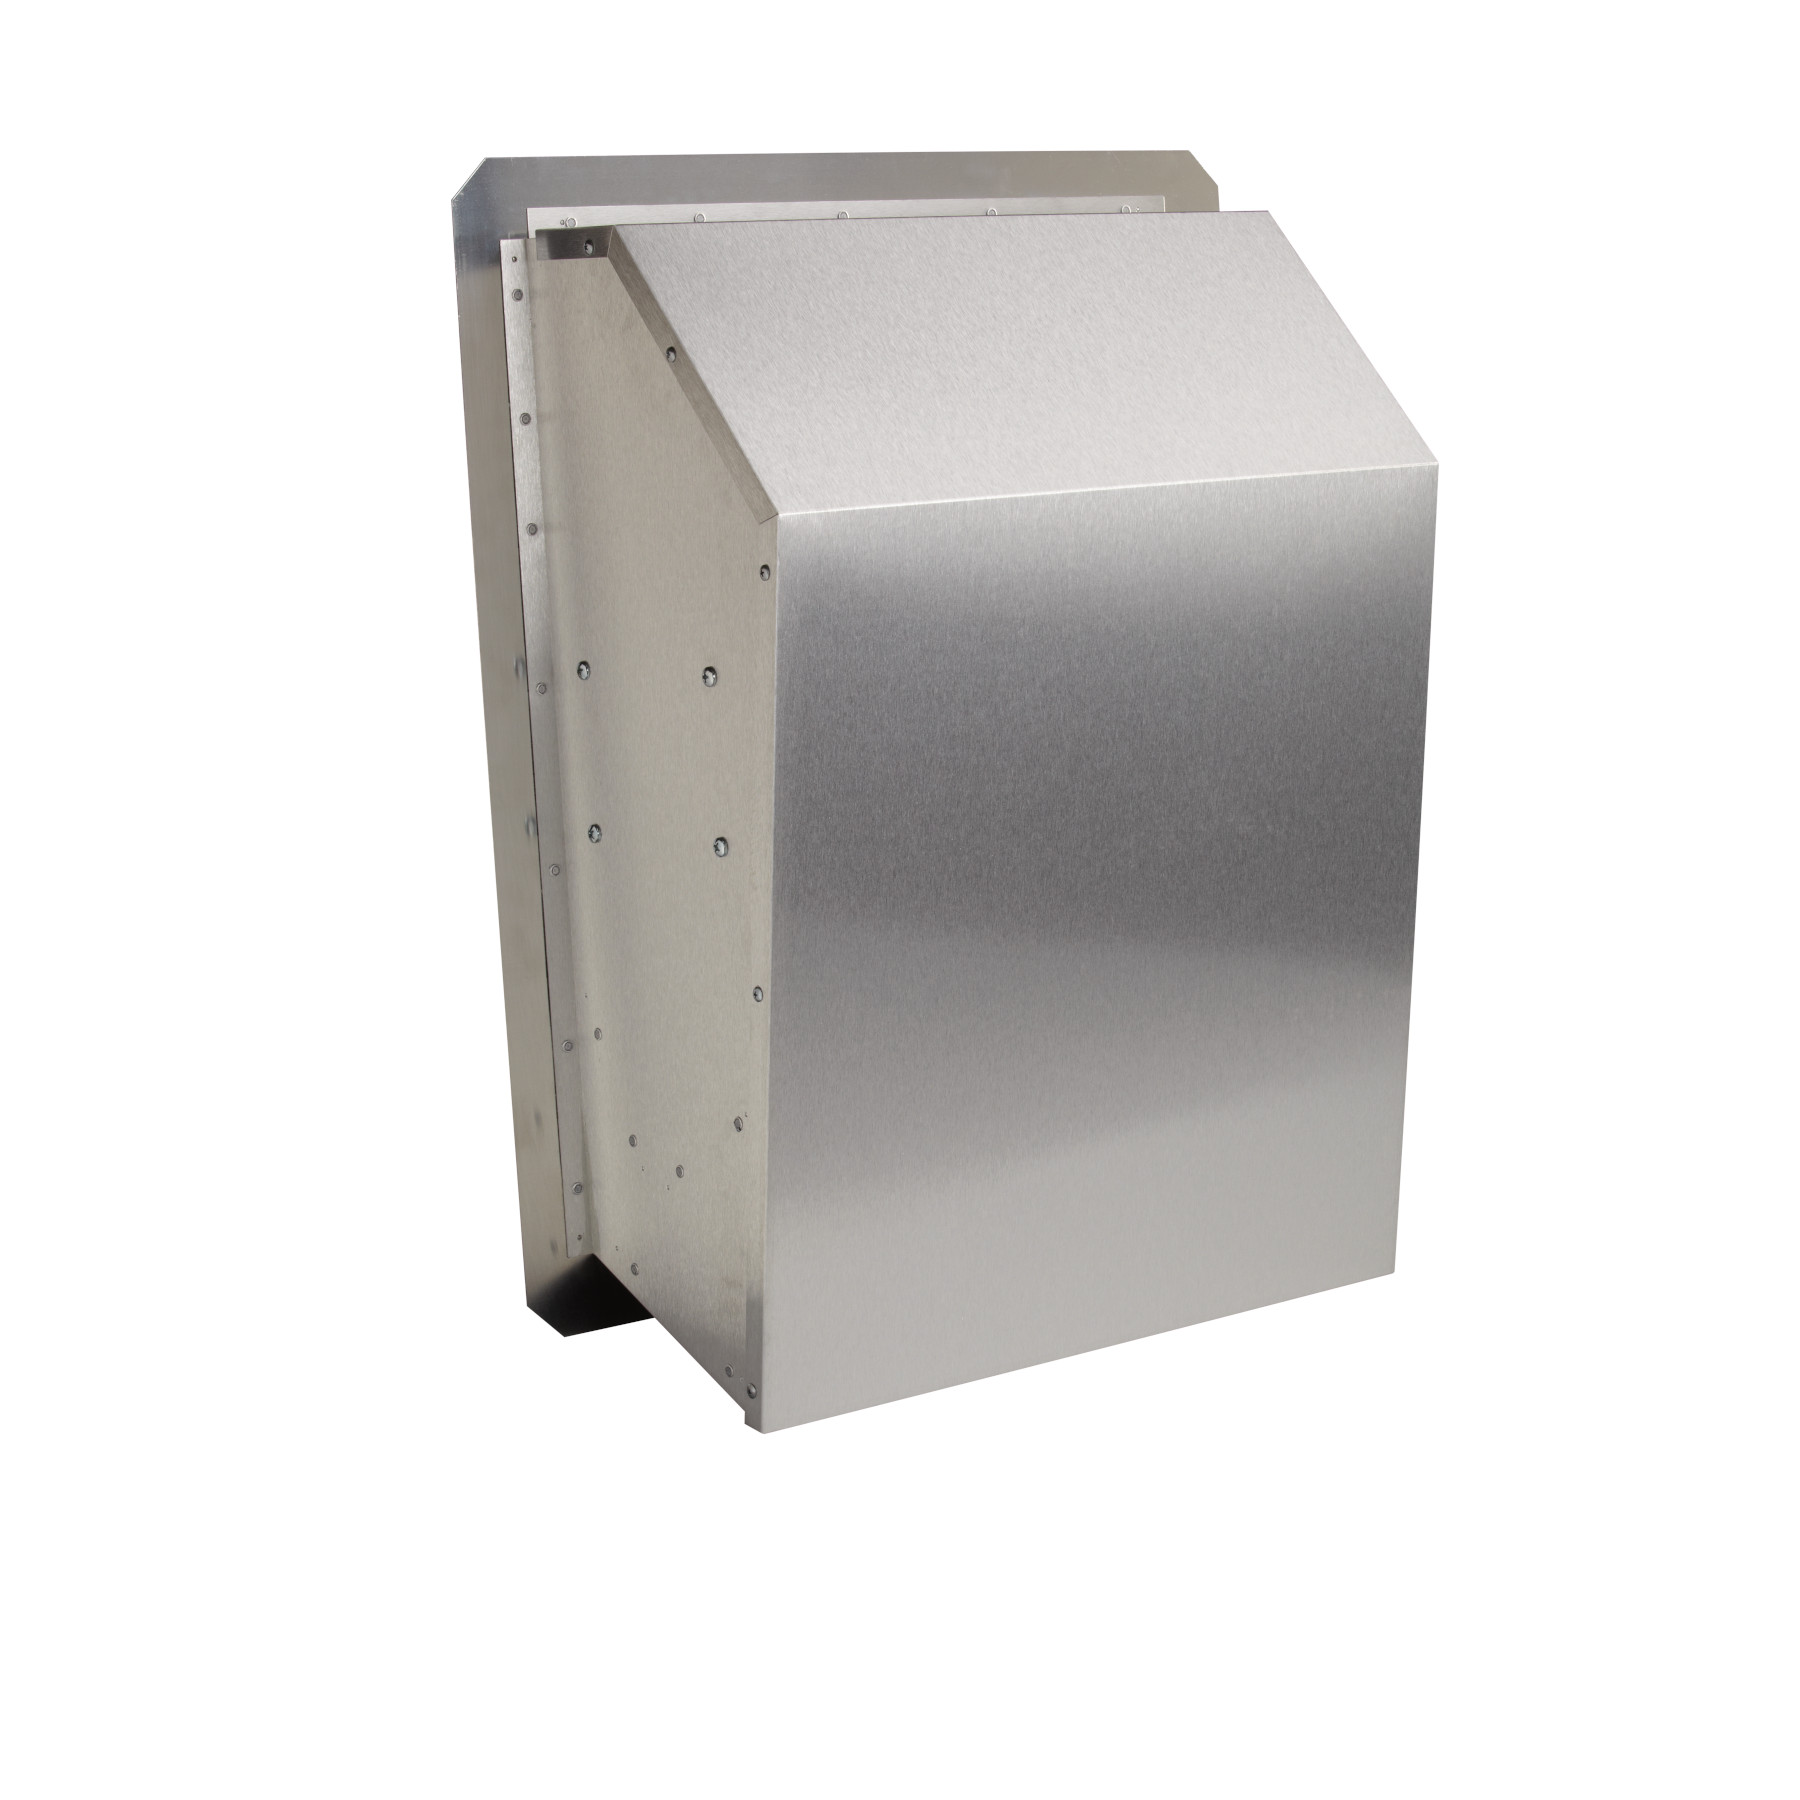 1500 CFM External Blower, for use with Select Broan® Range Hoods